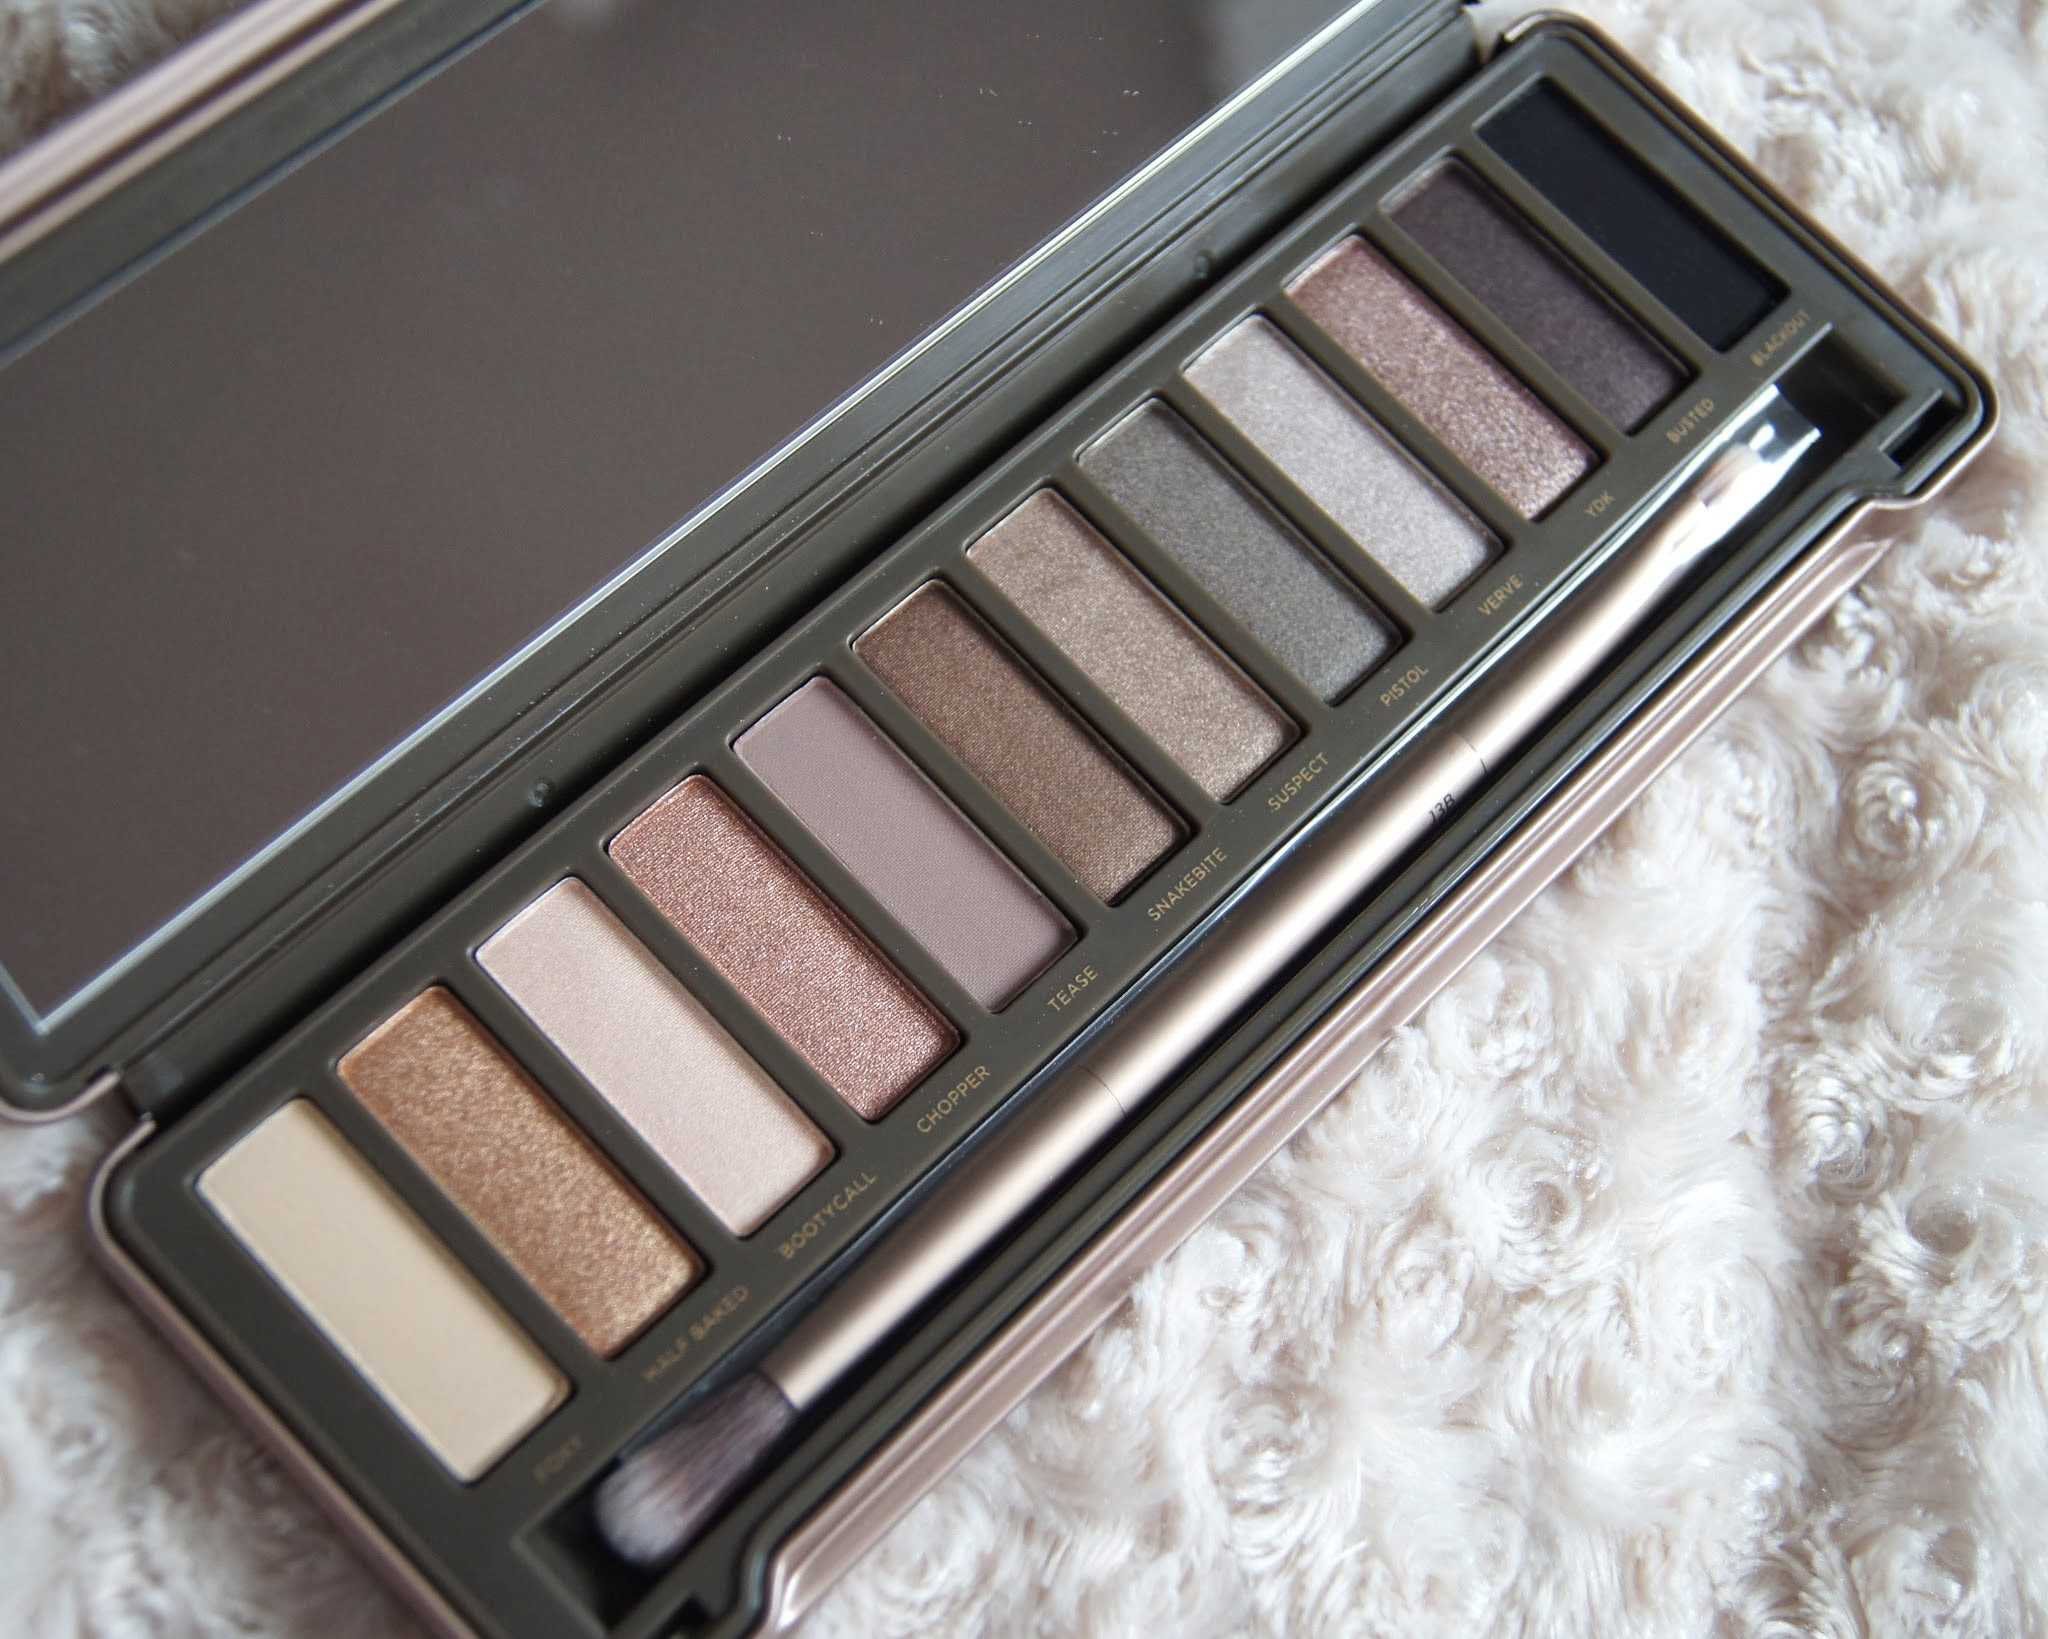 Urban Decay Naked 2 Eyeshadow Palette Review Swatches Bootycall Snakebite Suspect Pistol